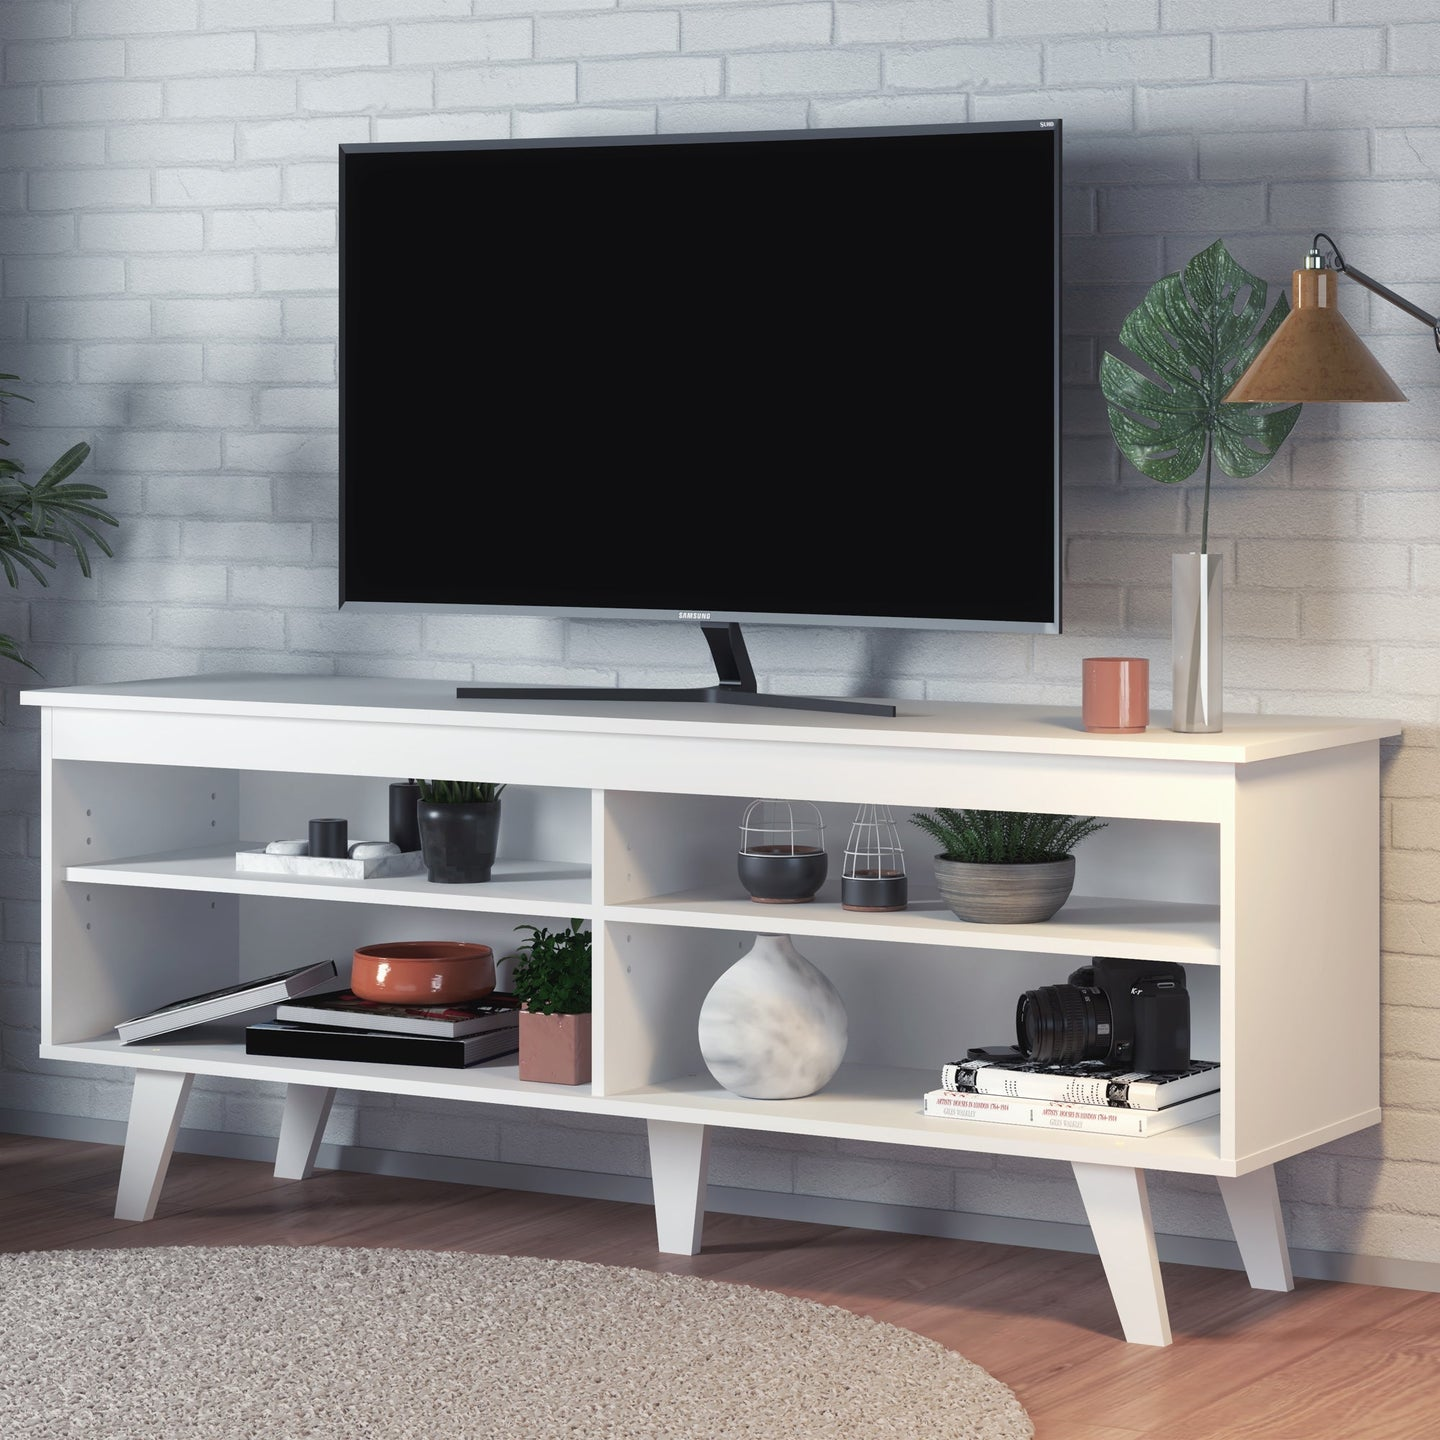 Boahaus Austin TV Stand, White, TV up to 55 inches, 4 open shelves